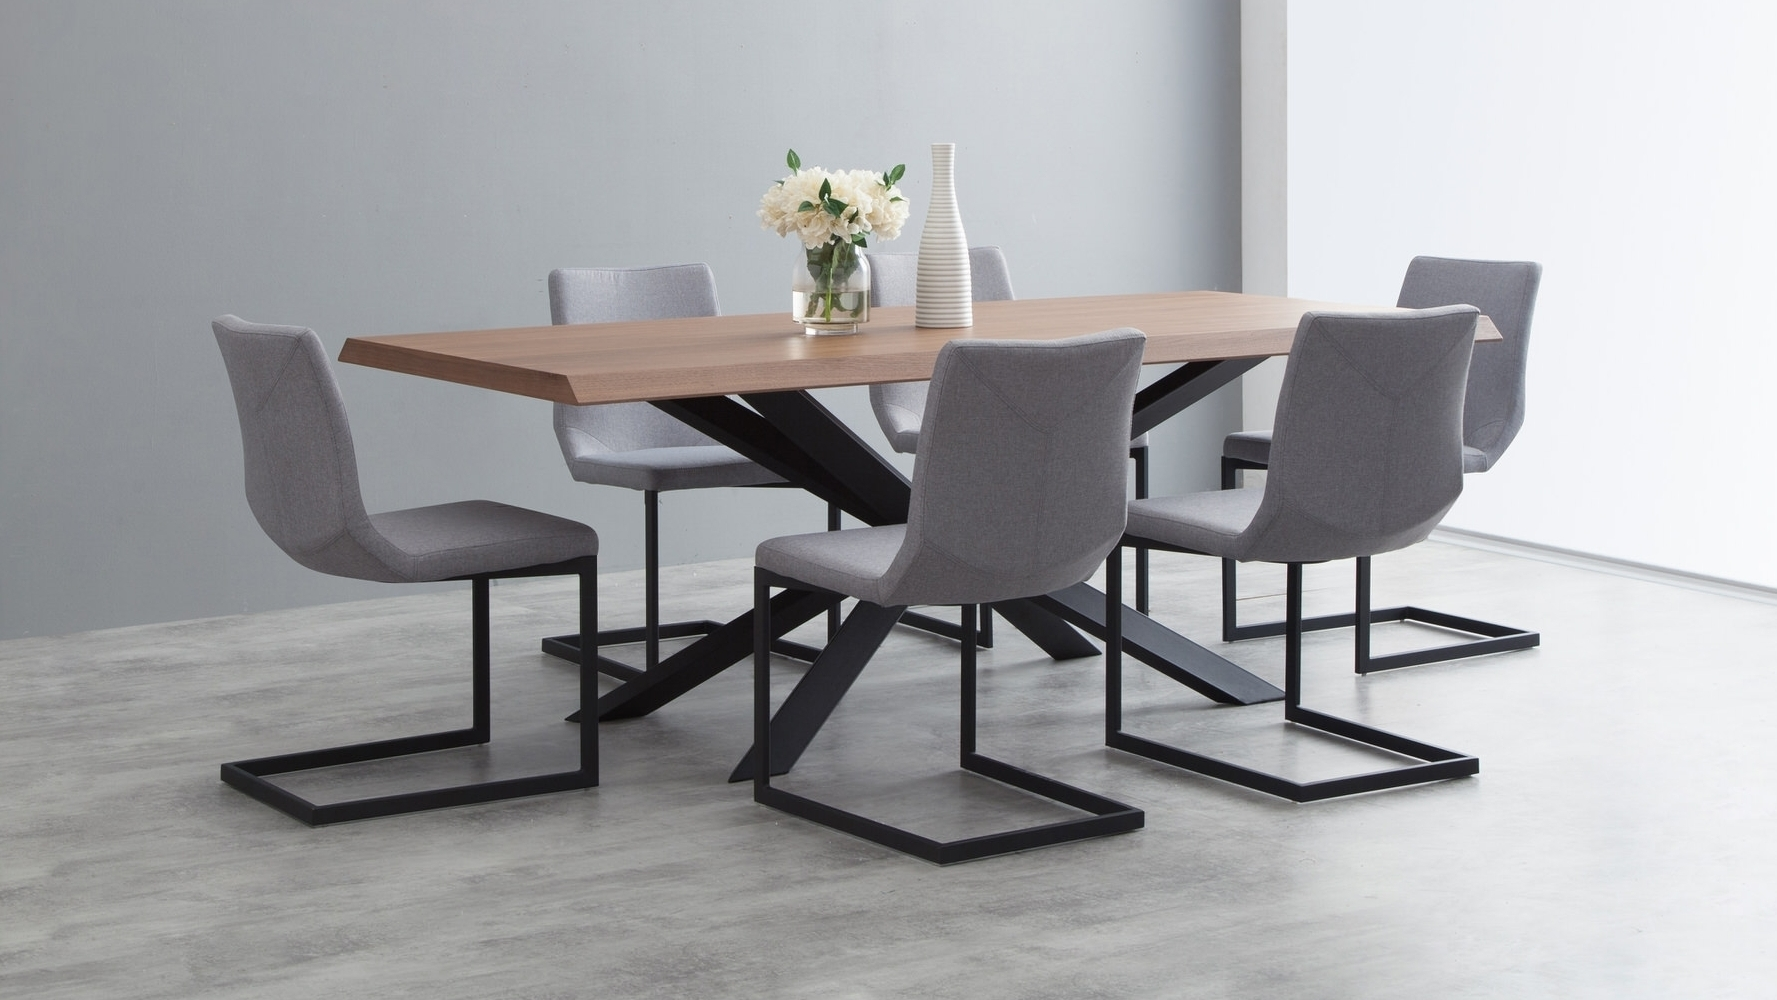 Furniture Amsterdam Amsterdam Dining Set 7 Piece Lounge Life